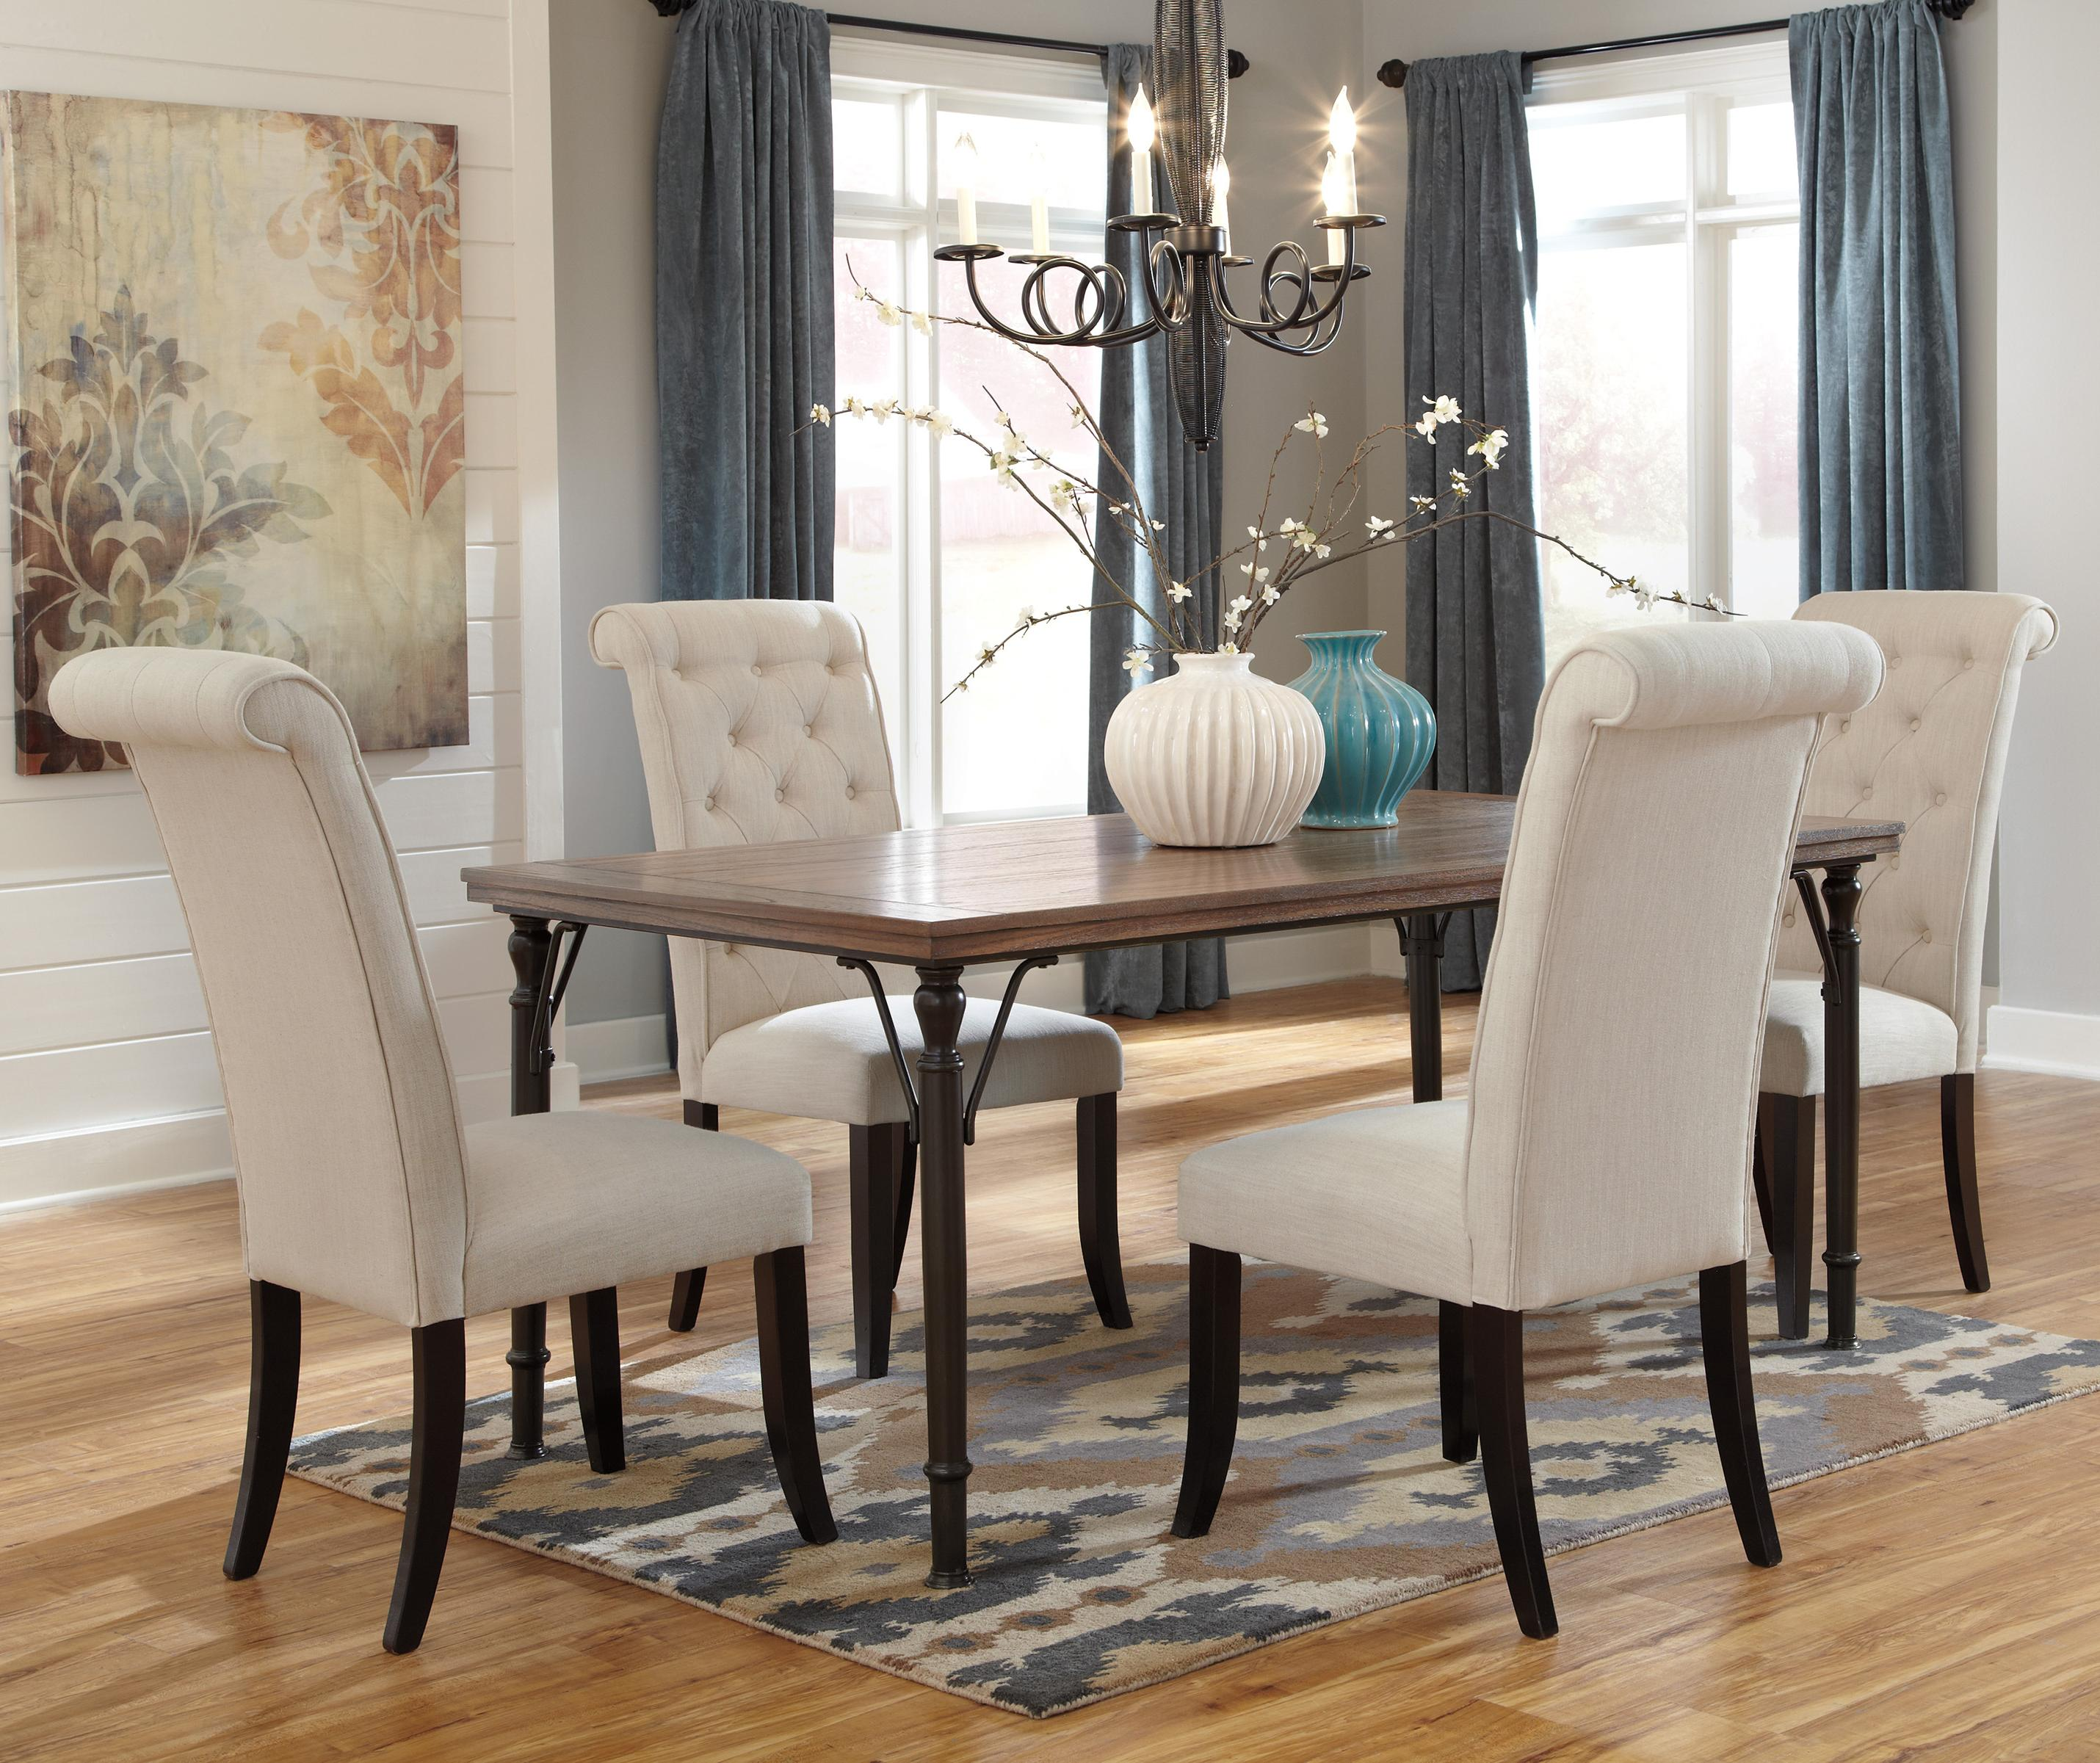 ashley furniture dining room 5 Piece Rectangular Dining Room Table Set w/ Wood Top & Metal Legs  ashley furniture dining room